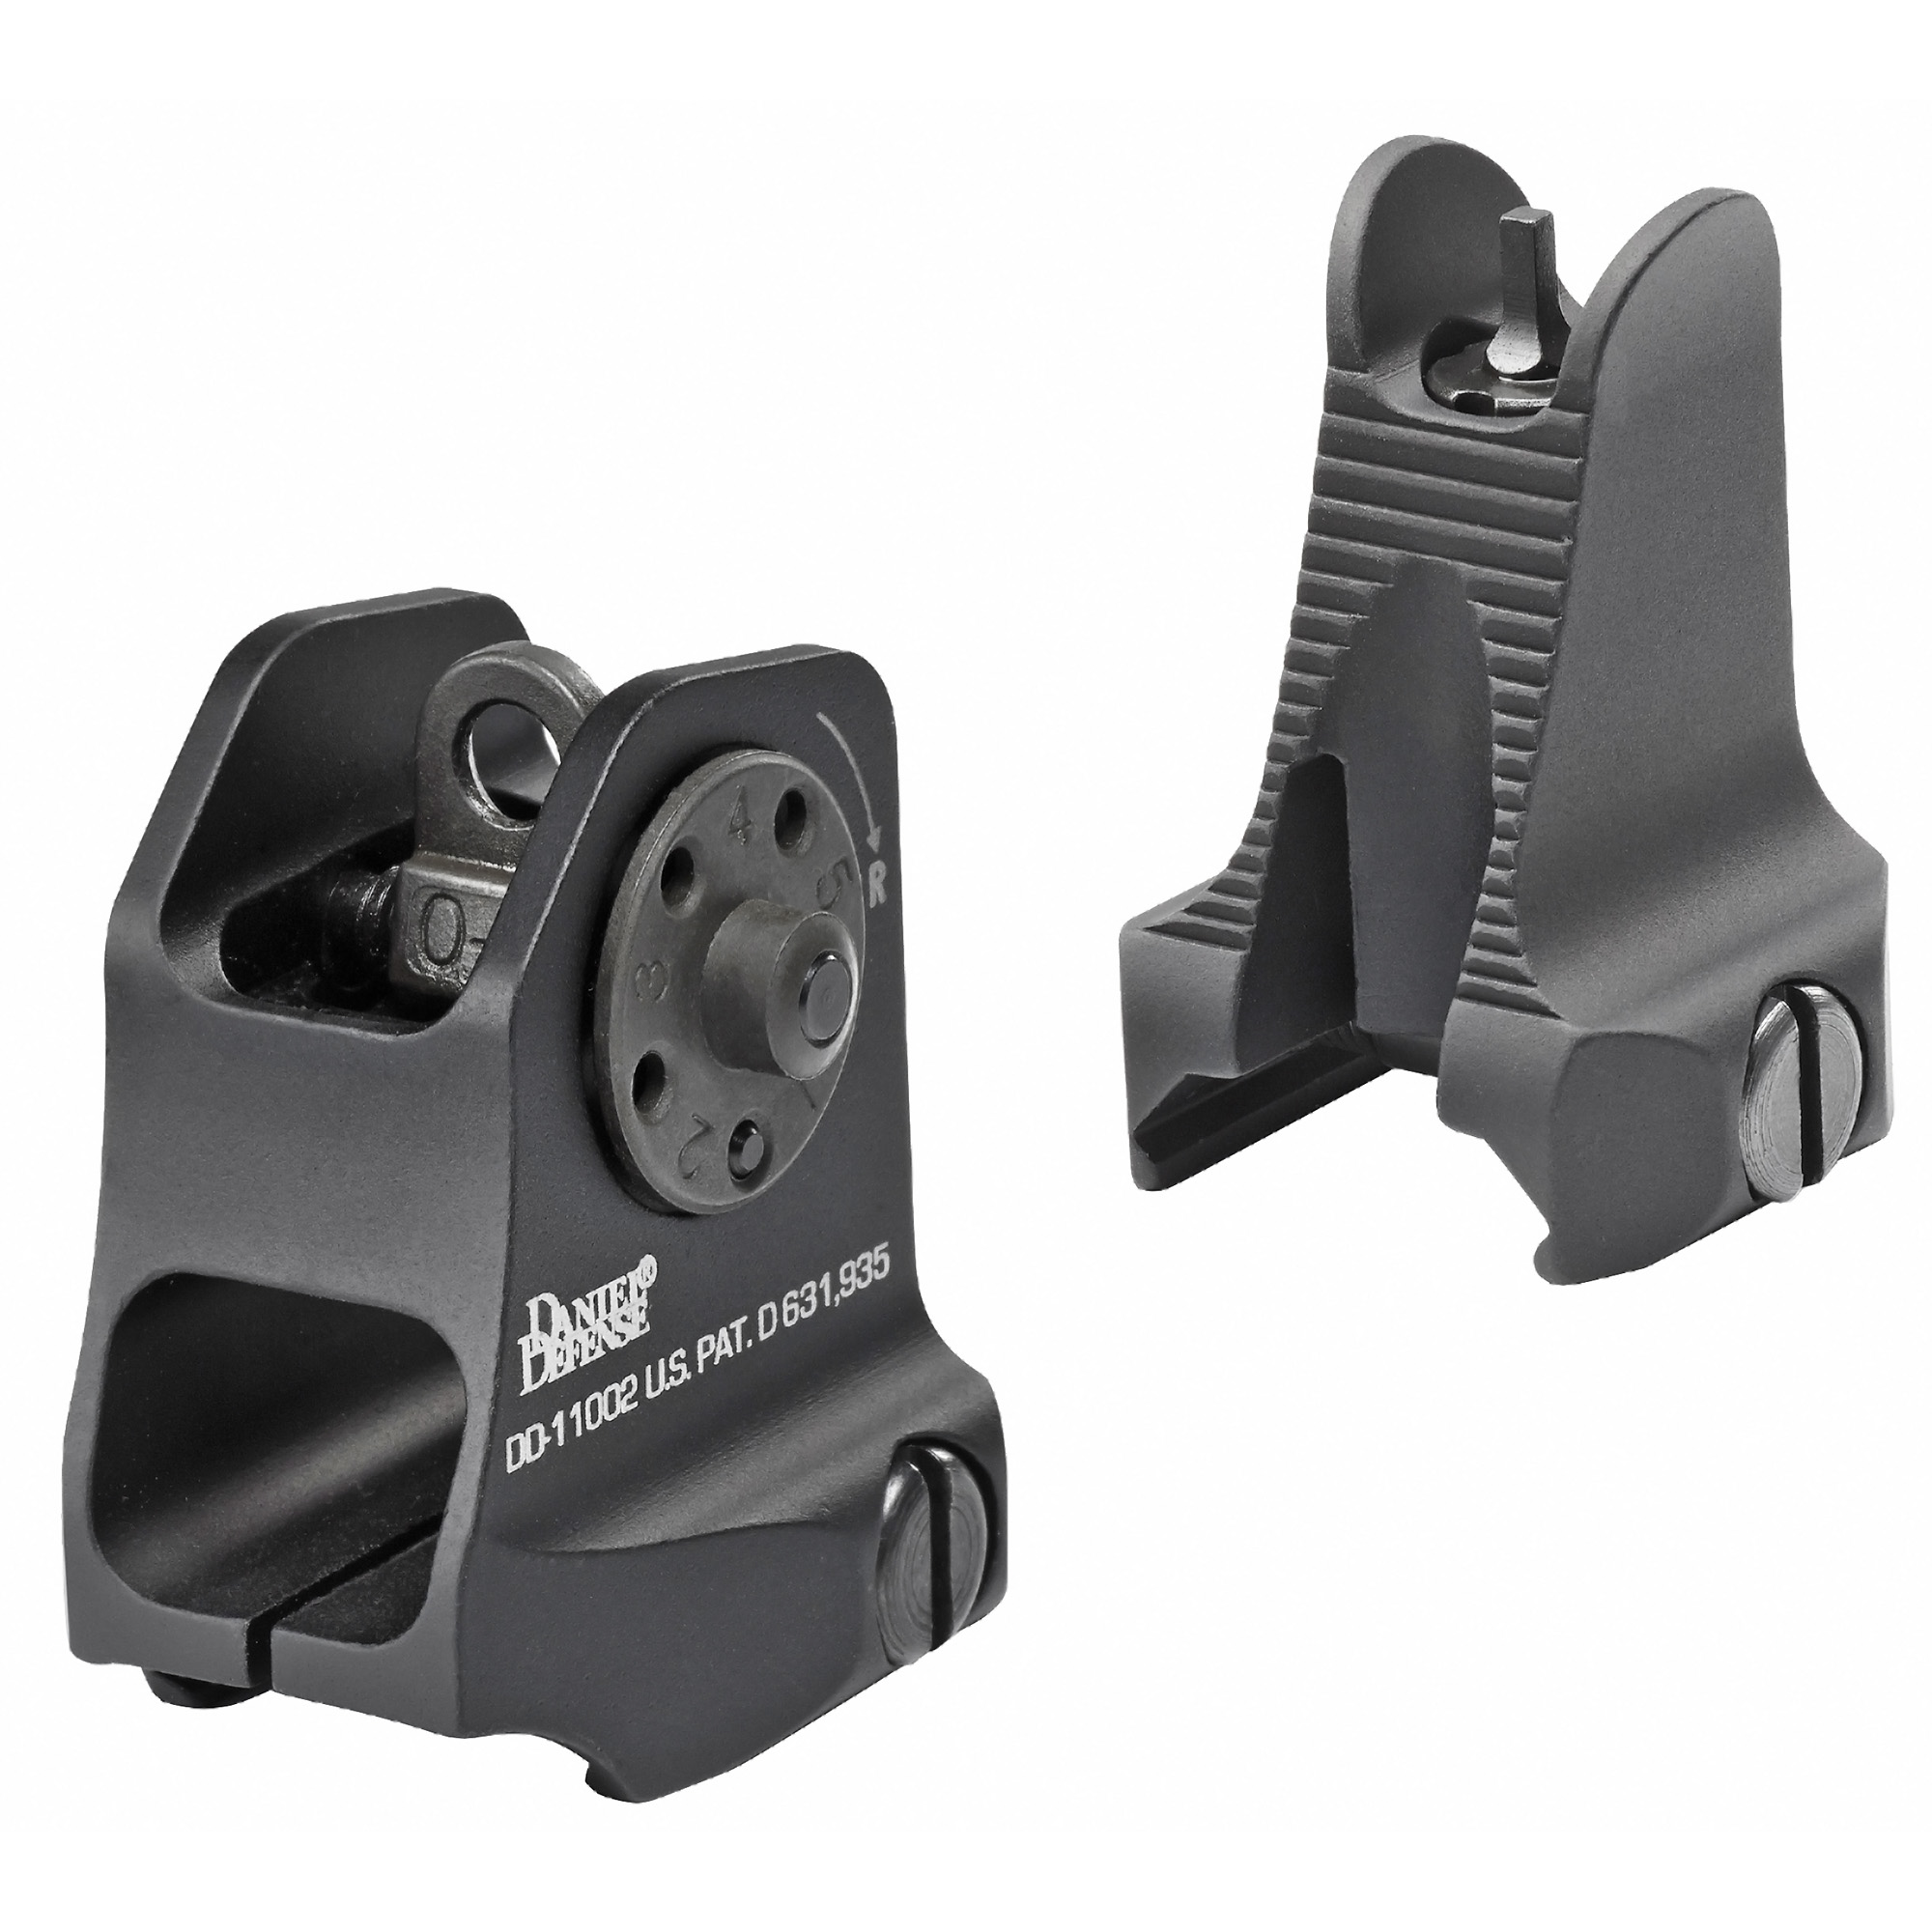 "Machined from 6061-T6 Aluminum and Military Specification Hard Anodized"" their Fixed Front/Rear Sight combo is both lightweight and durable and is the perfect complement to each other."